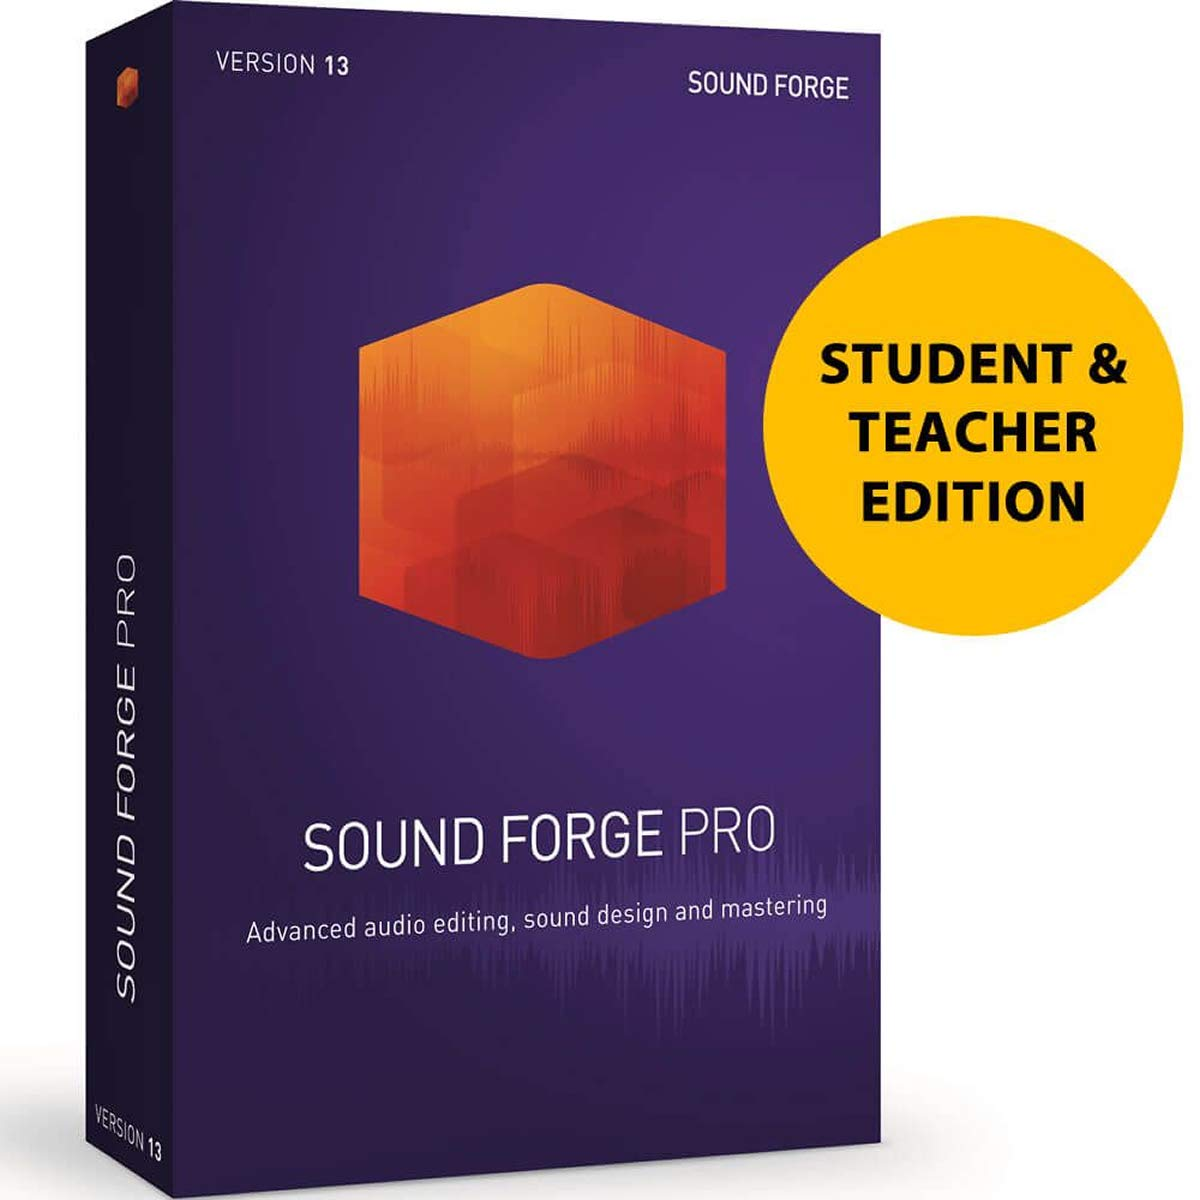 MAGIX Sound Forge Pro 13 for Students and Teachers - Audio Editing, Recording, Restoration and Mastering